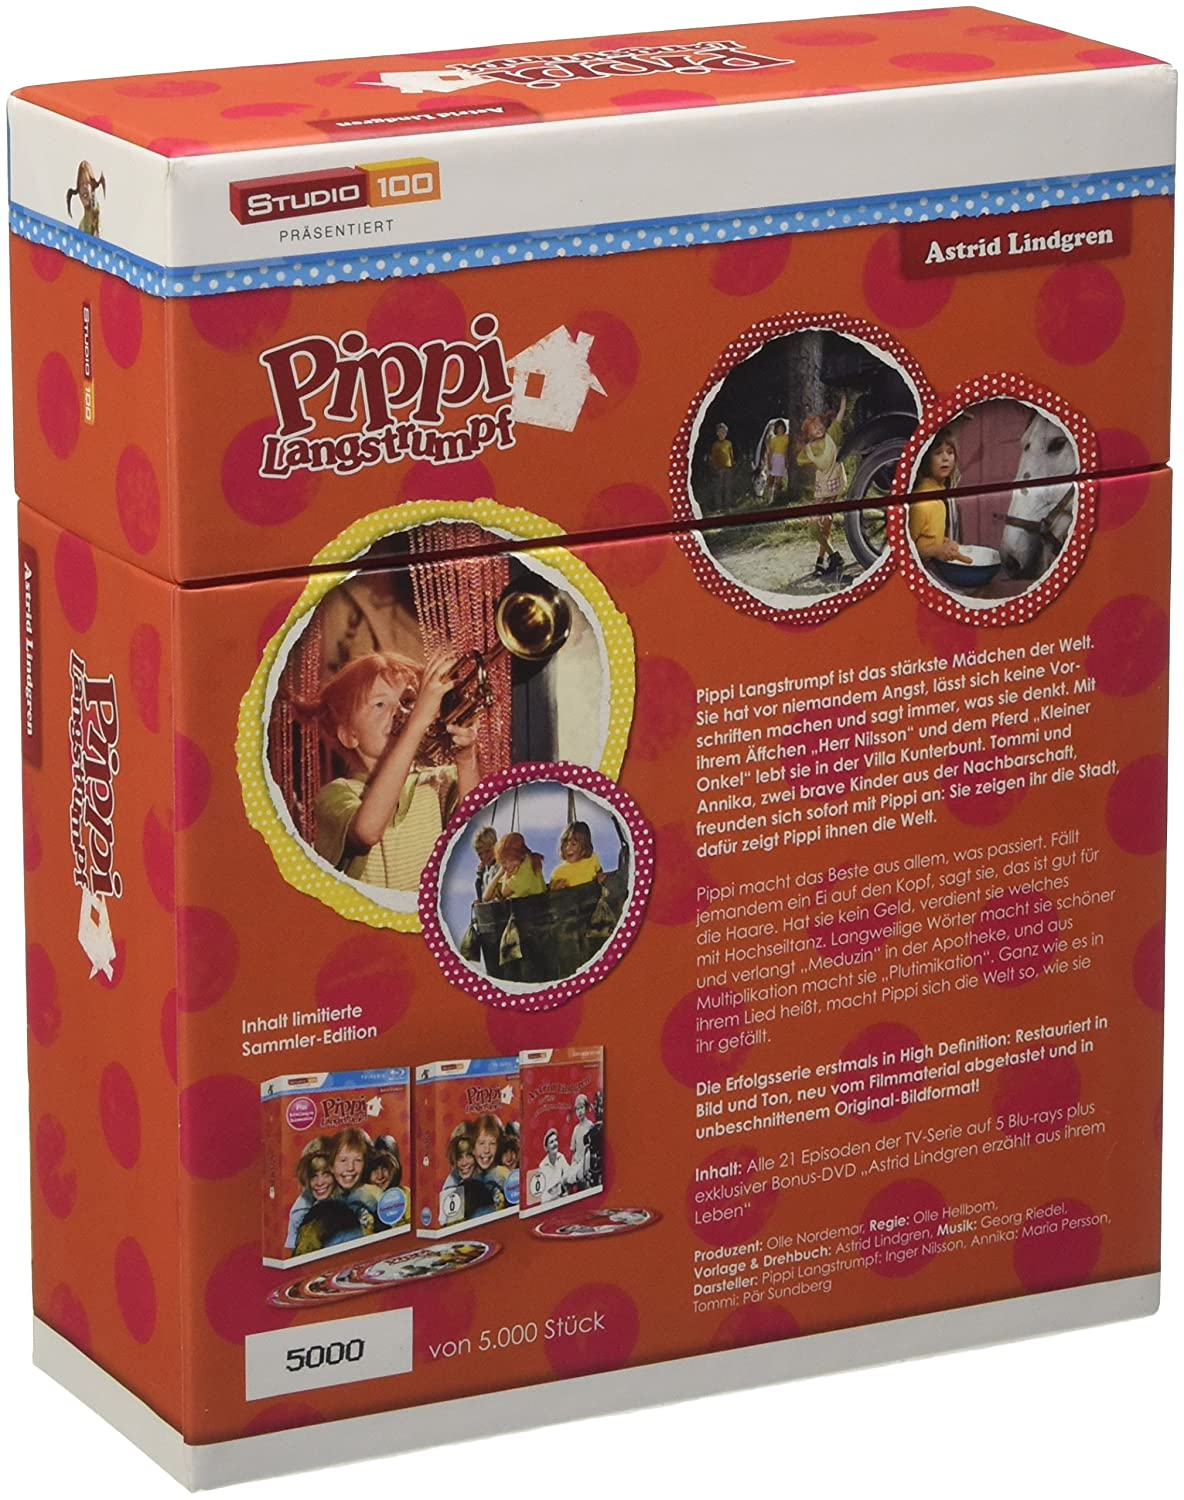 Pippi Langstrumpf TV-Serie Blu-ray Box - Sammler-Edition: Amazon.ca: DVD